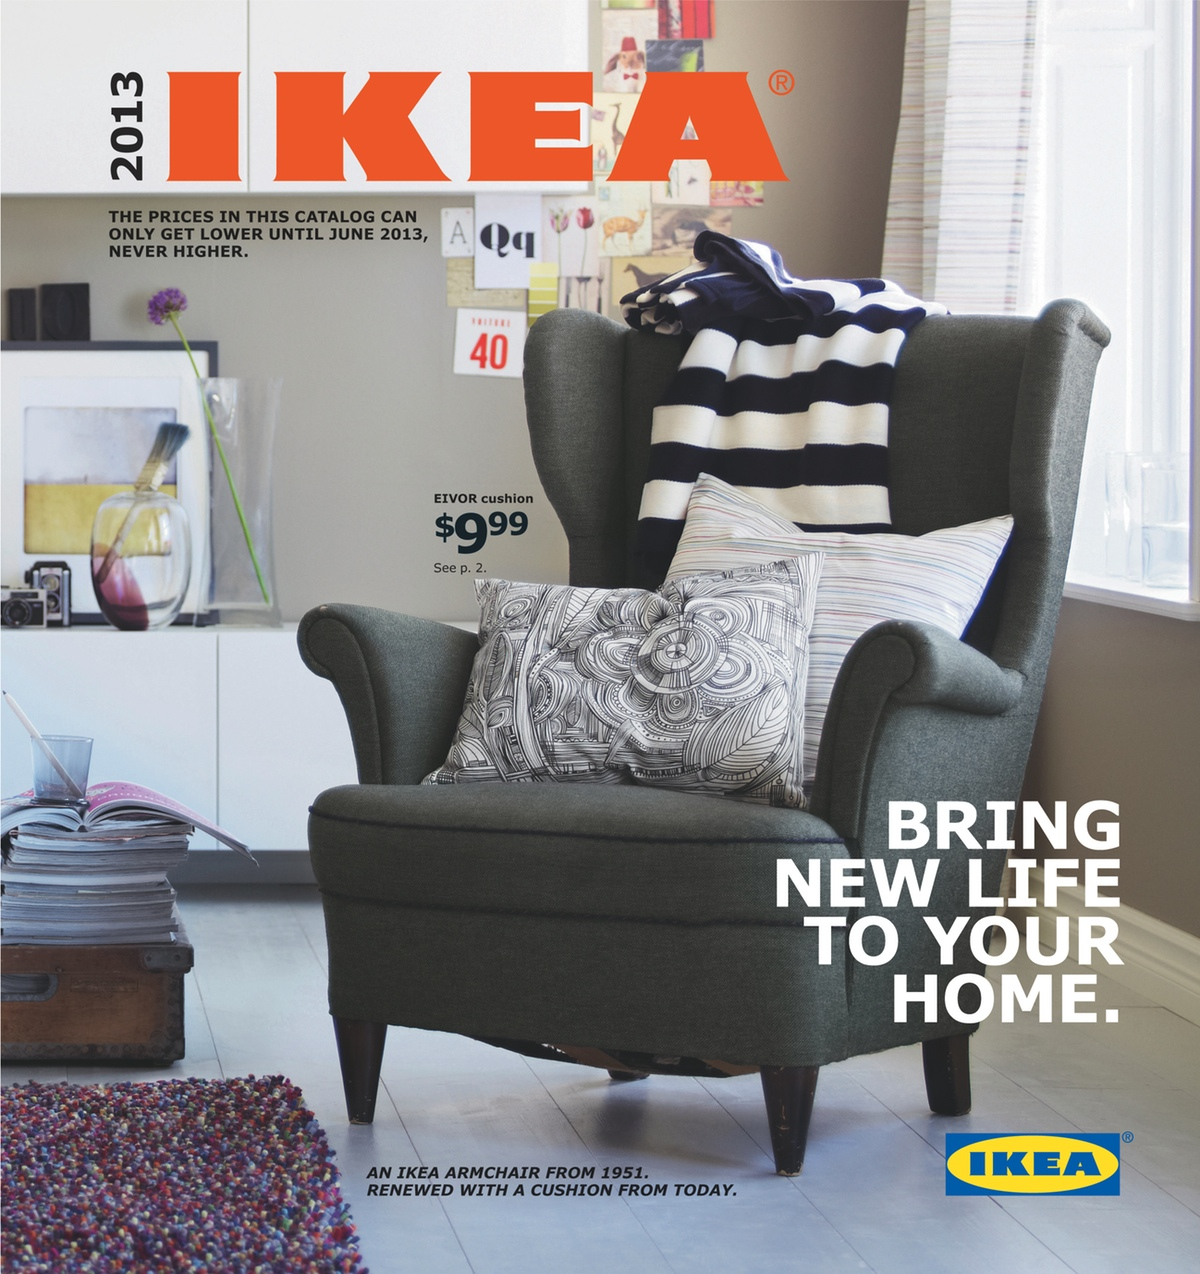 Catalogue Ikea 9808 To Ikea Or Not To Ikea